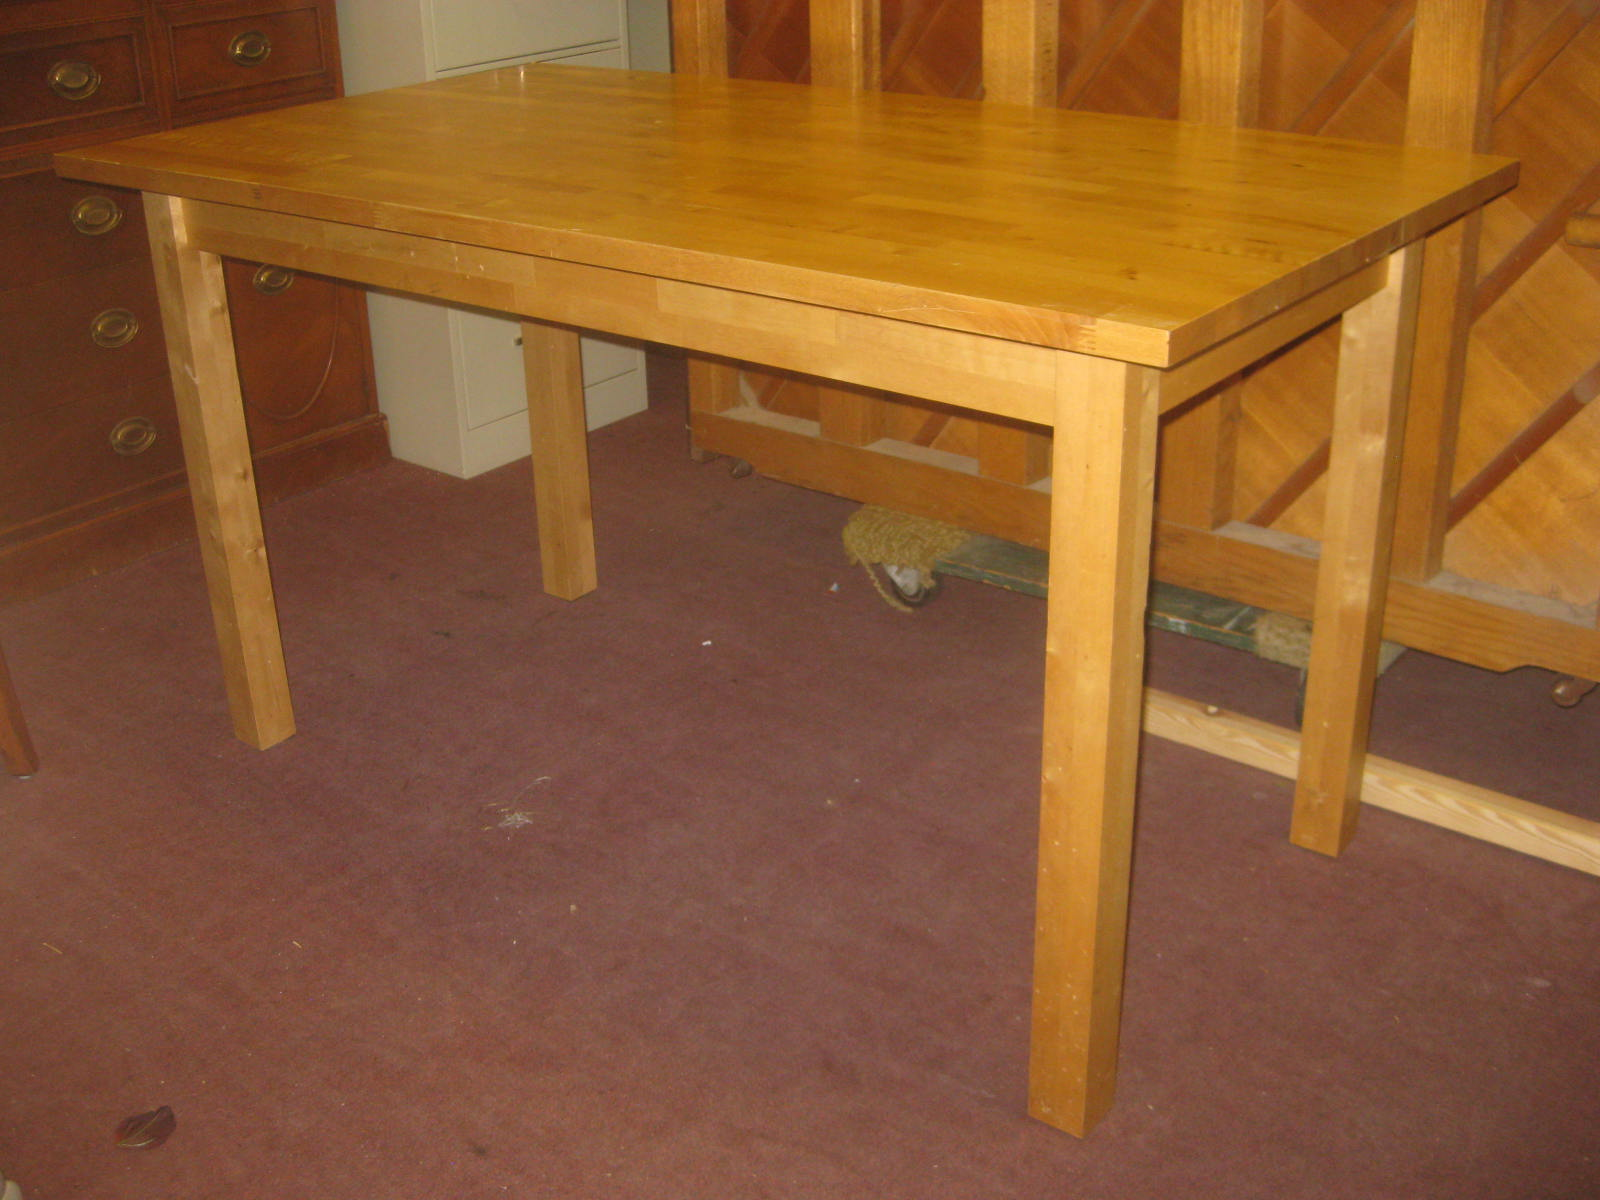 Buy Butcher Block Table Top: UHURU FURNITURE & COLLECTIBLES: SOLD